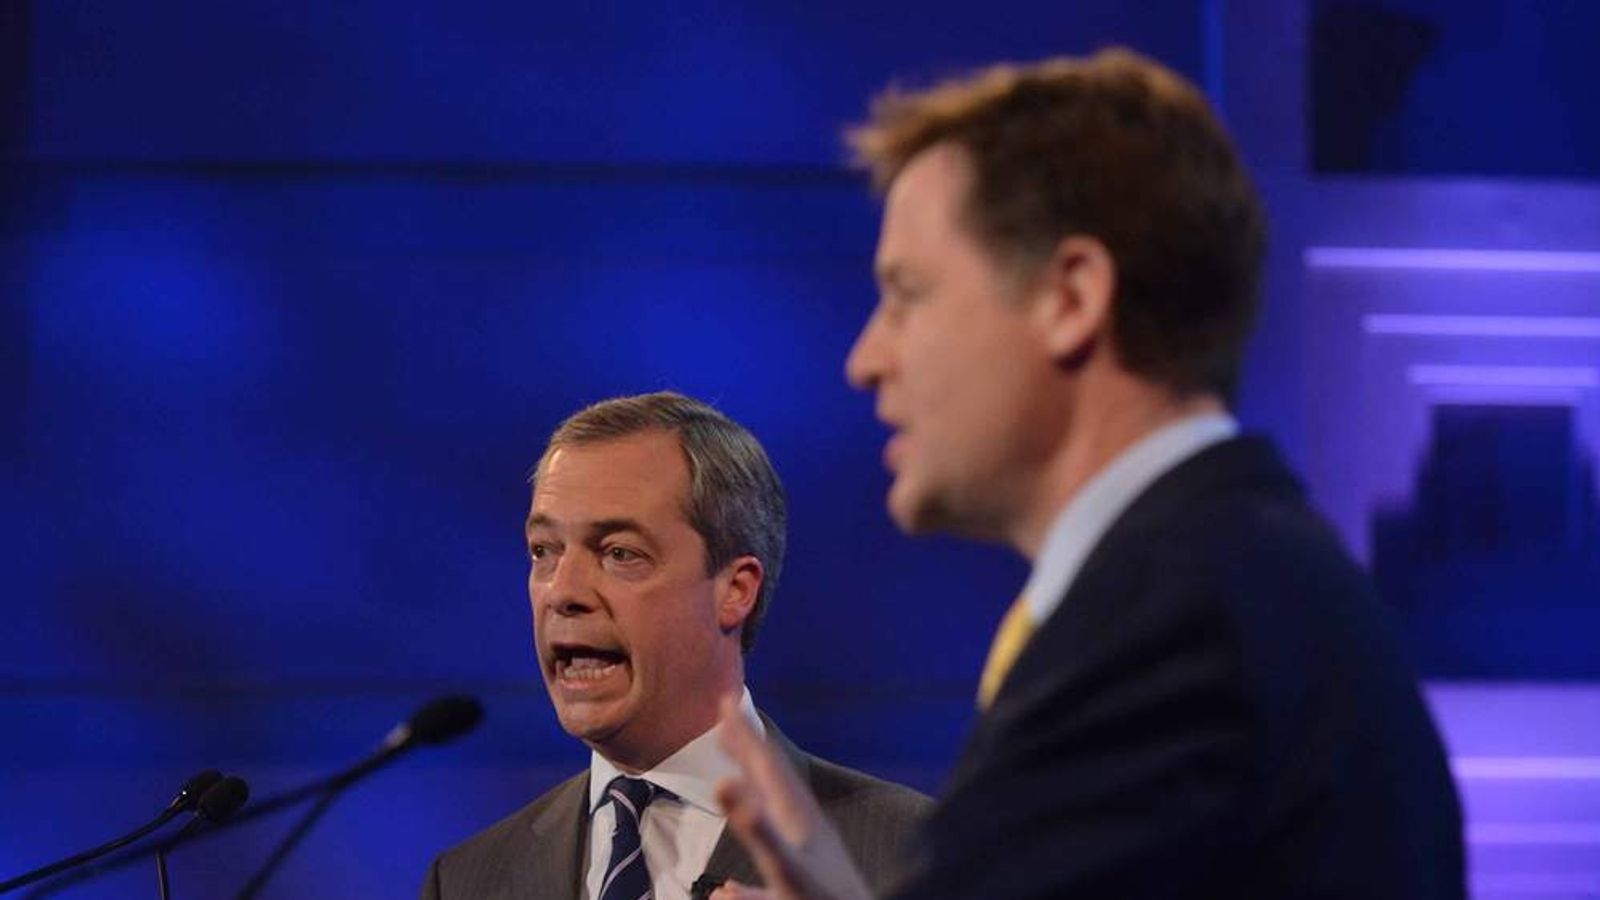 Nick Clegg and Nigel Farage in TV debate